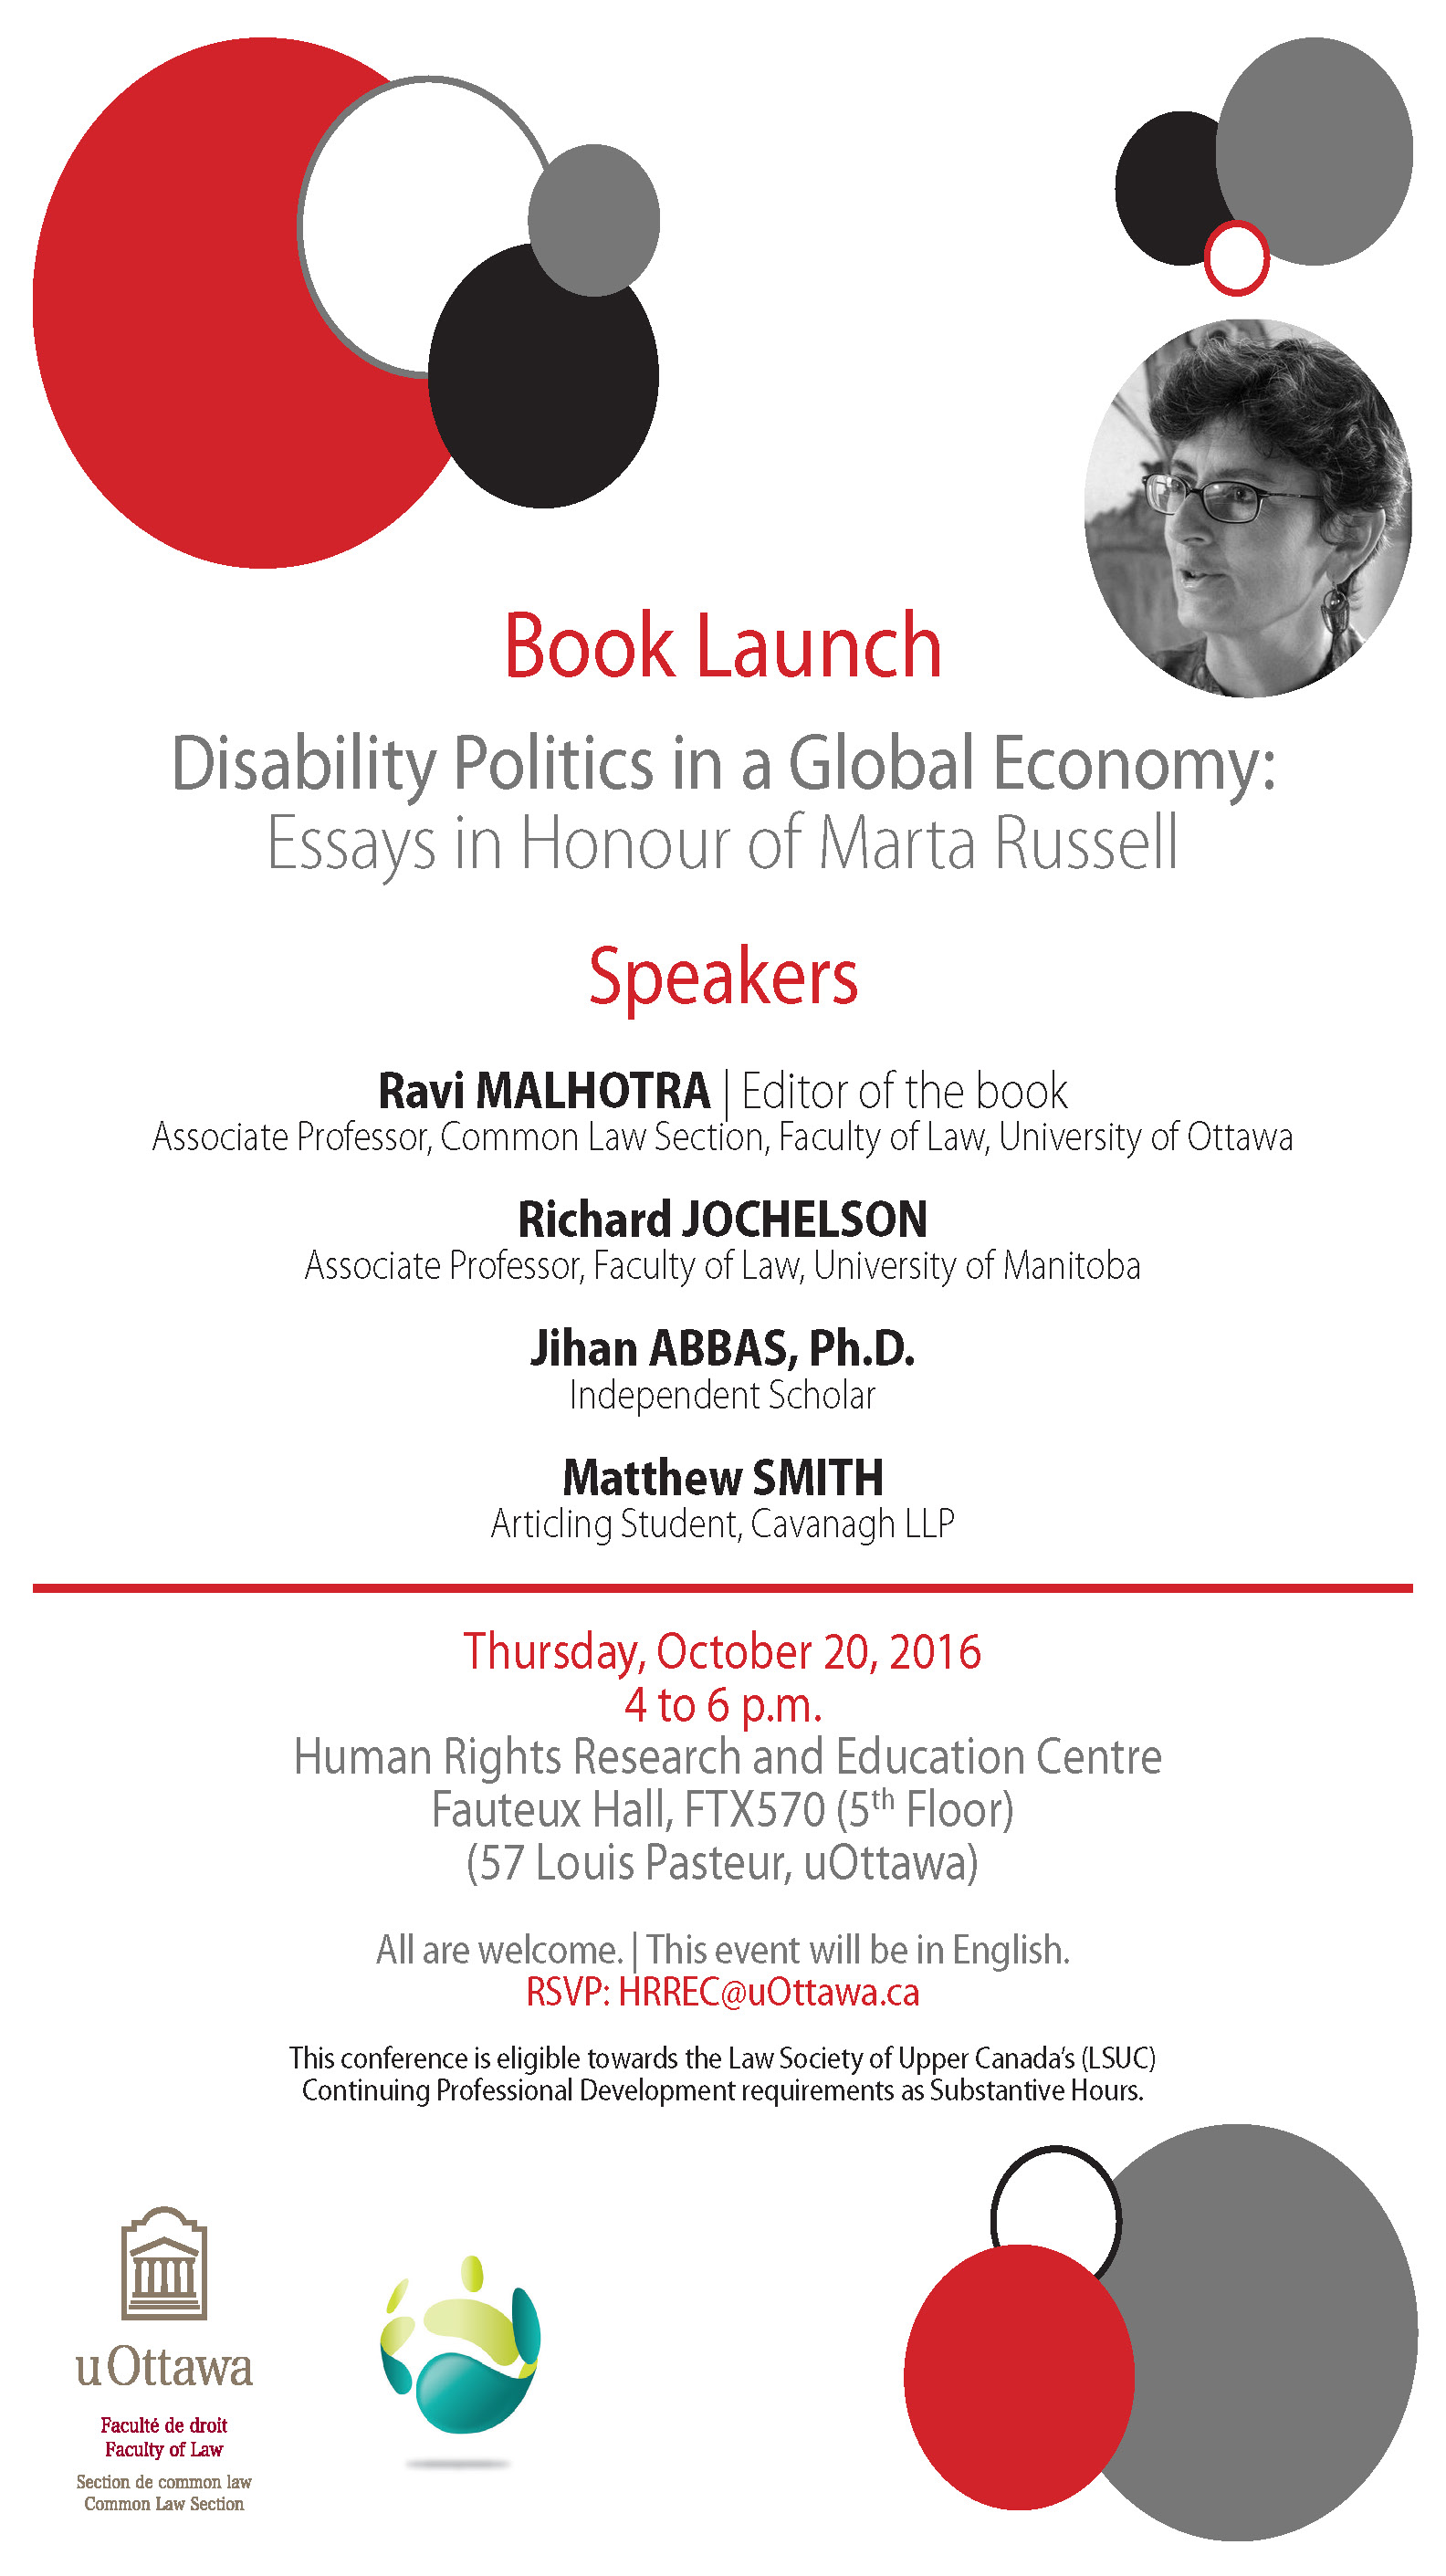 Essays in Honour of Marta Russell